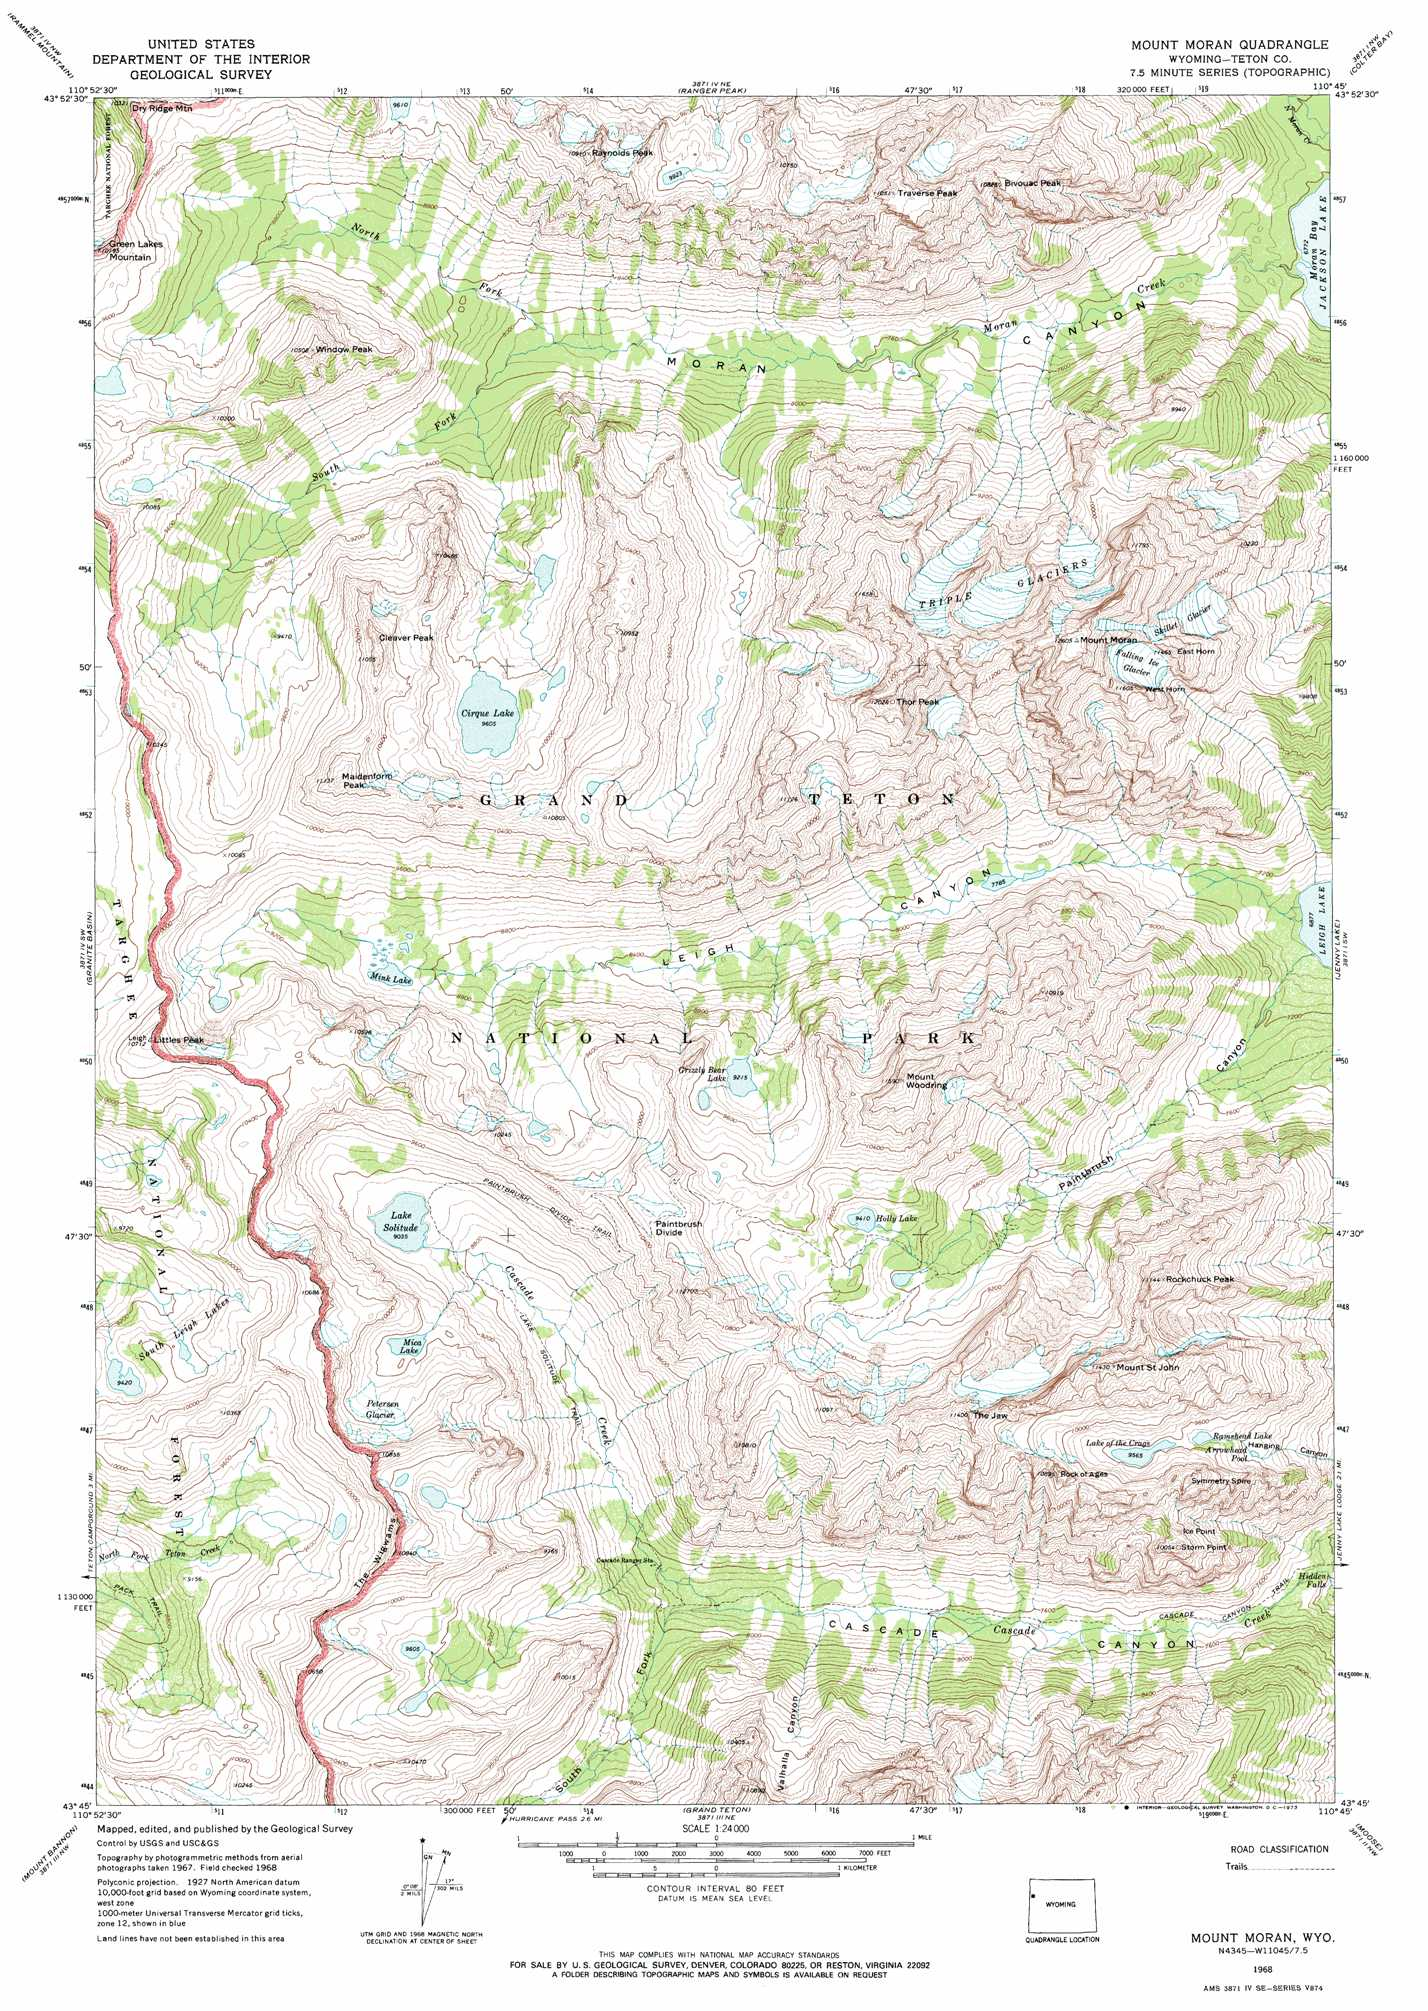 Language In 45 And 47 Stella Street: Mount Moran Topographic Map, WY